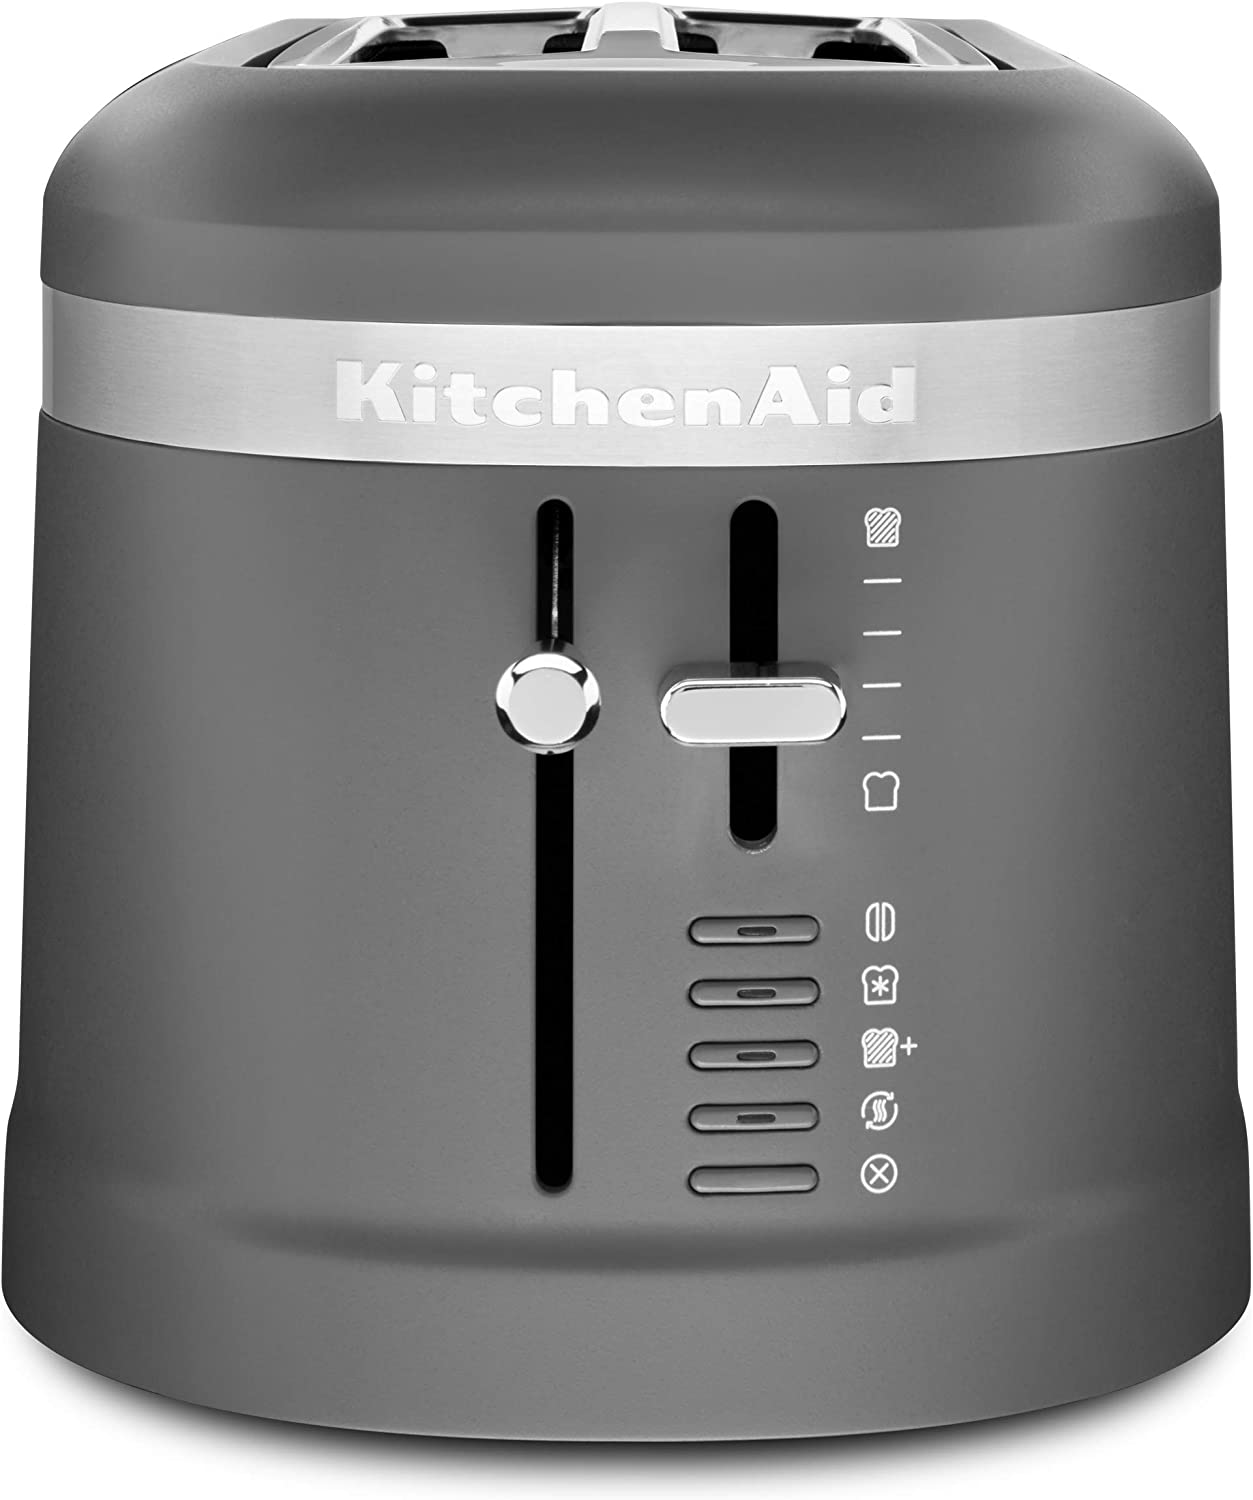 KitchenAid KMT5115DG Long Slot Toaster, 4 Slice, Matte Charcoal Grey (Renewed)